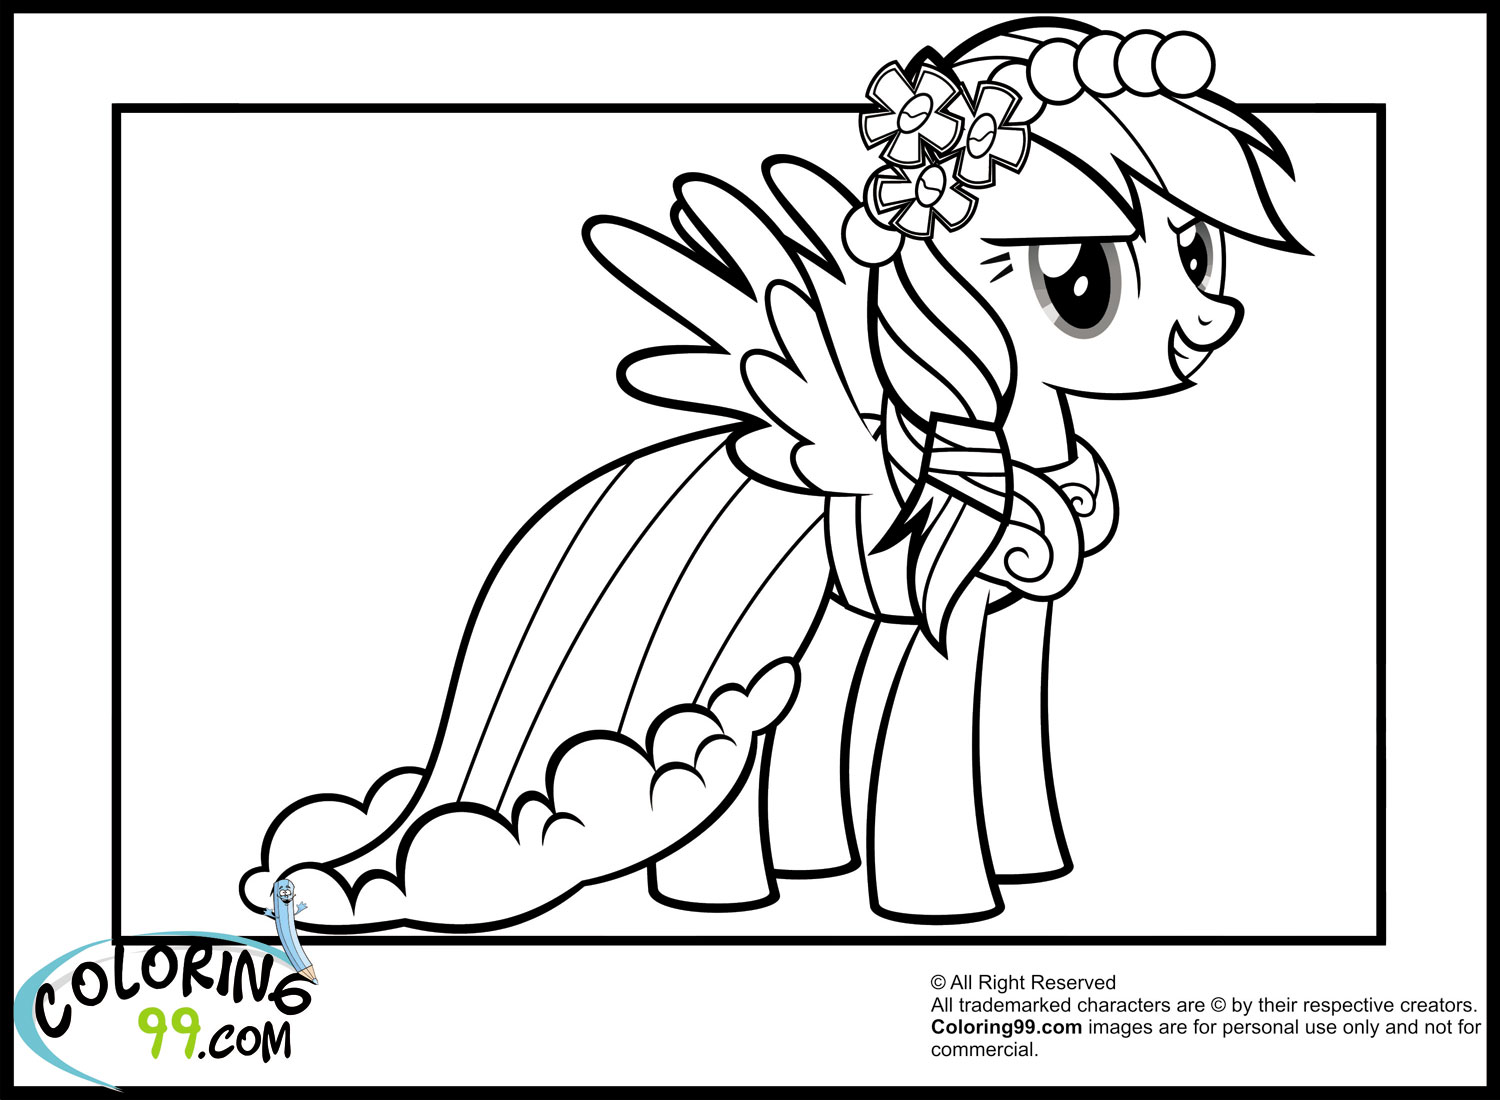 dash coloring pages - photo#11